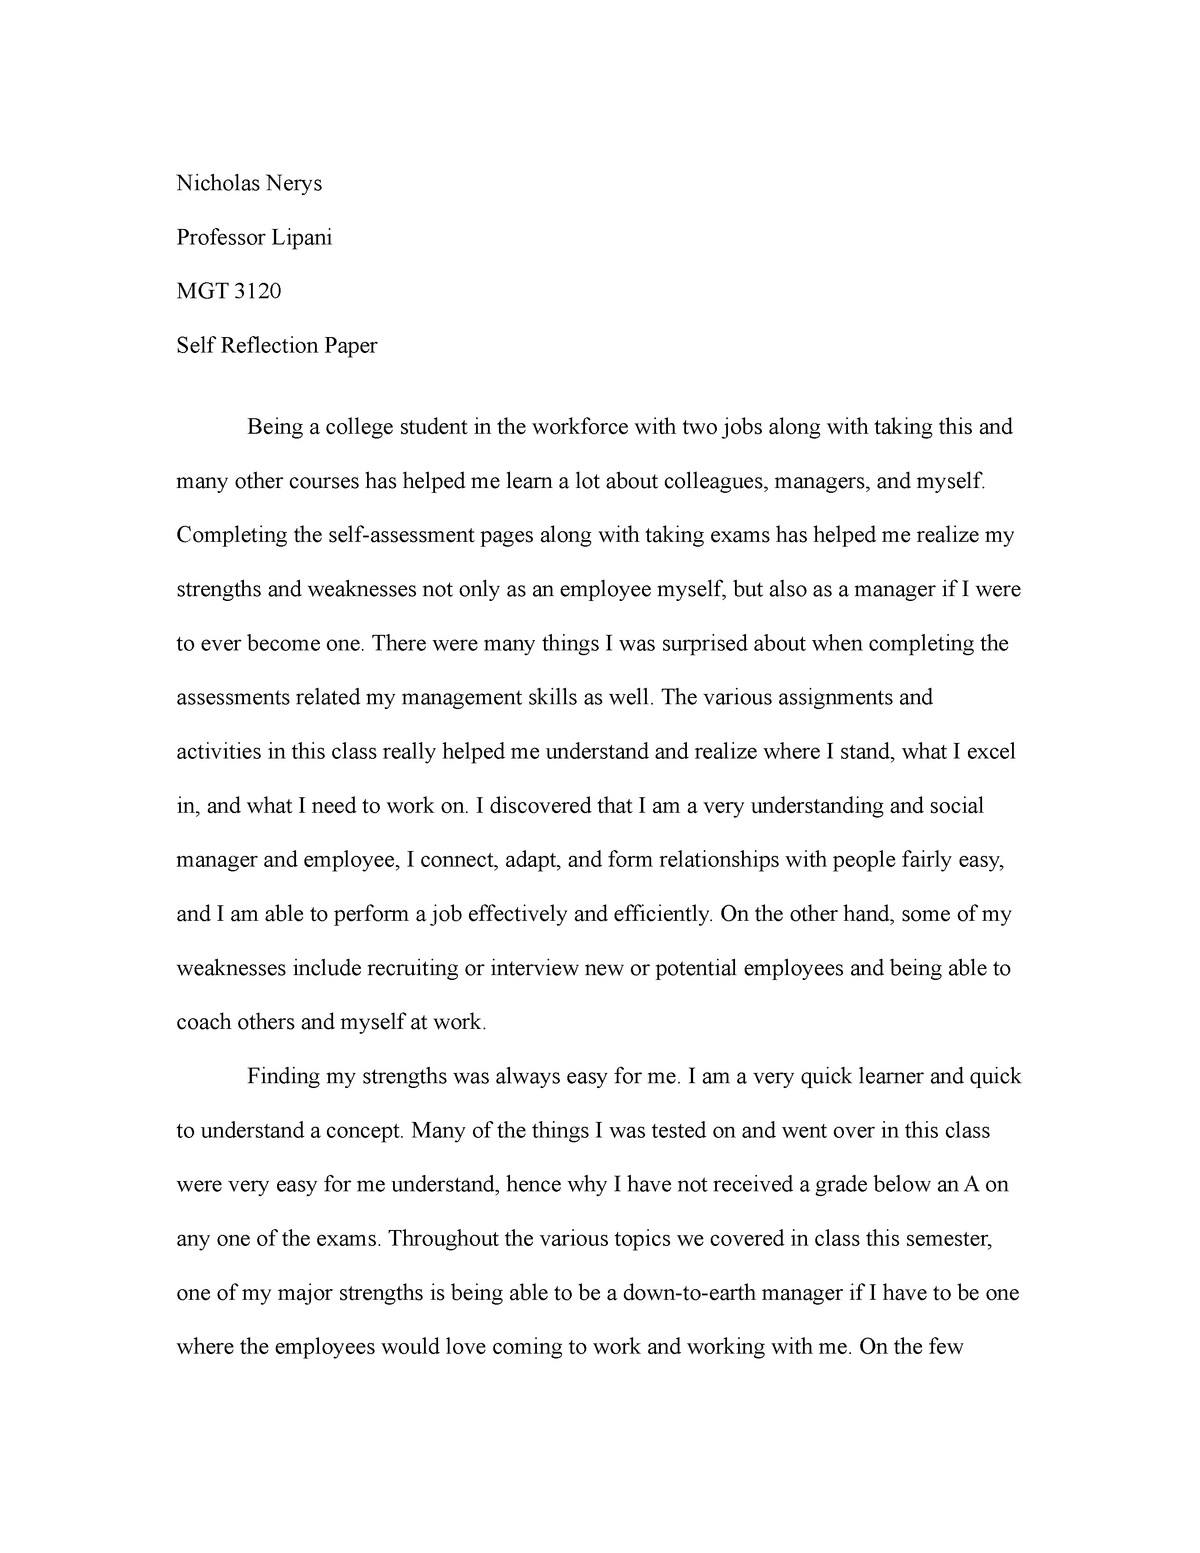 Custom Term Papers And Essays  Important Of English Language Essay also Personal Essay Thesis Statement Mgt  Selfreflection Paper  Mgt   Baruch College  English Class Reflection Essay